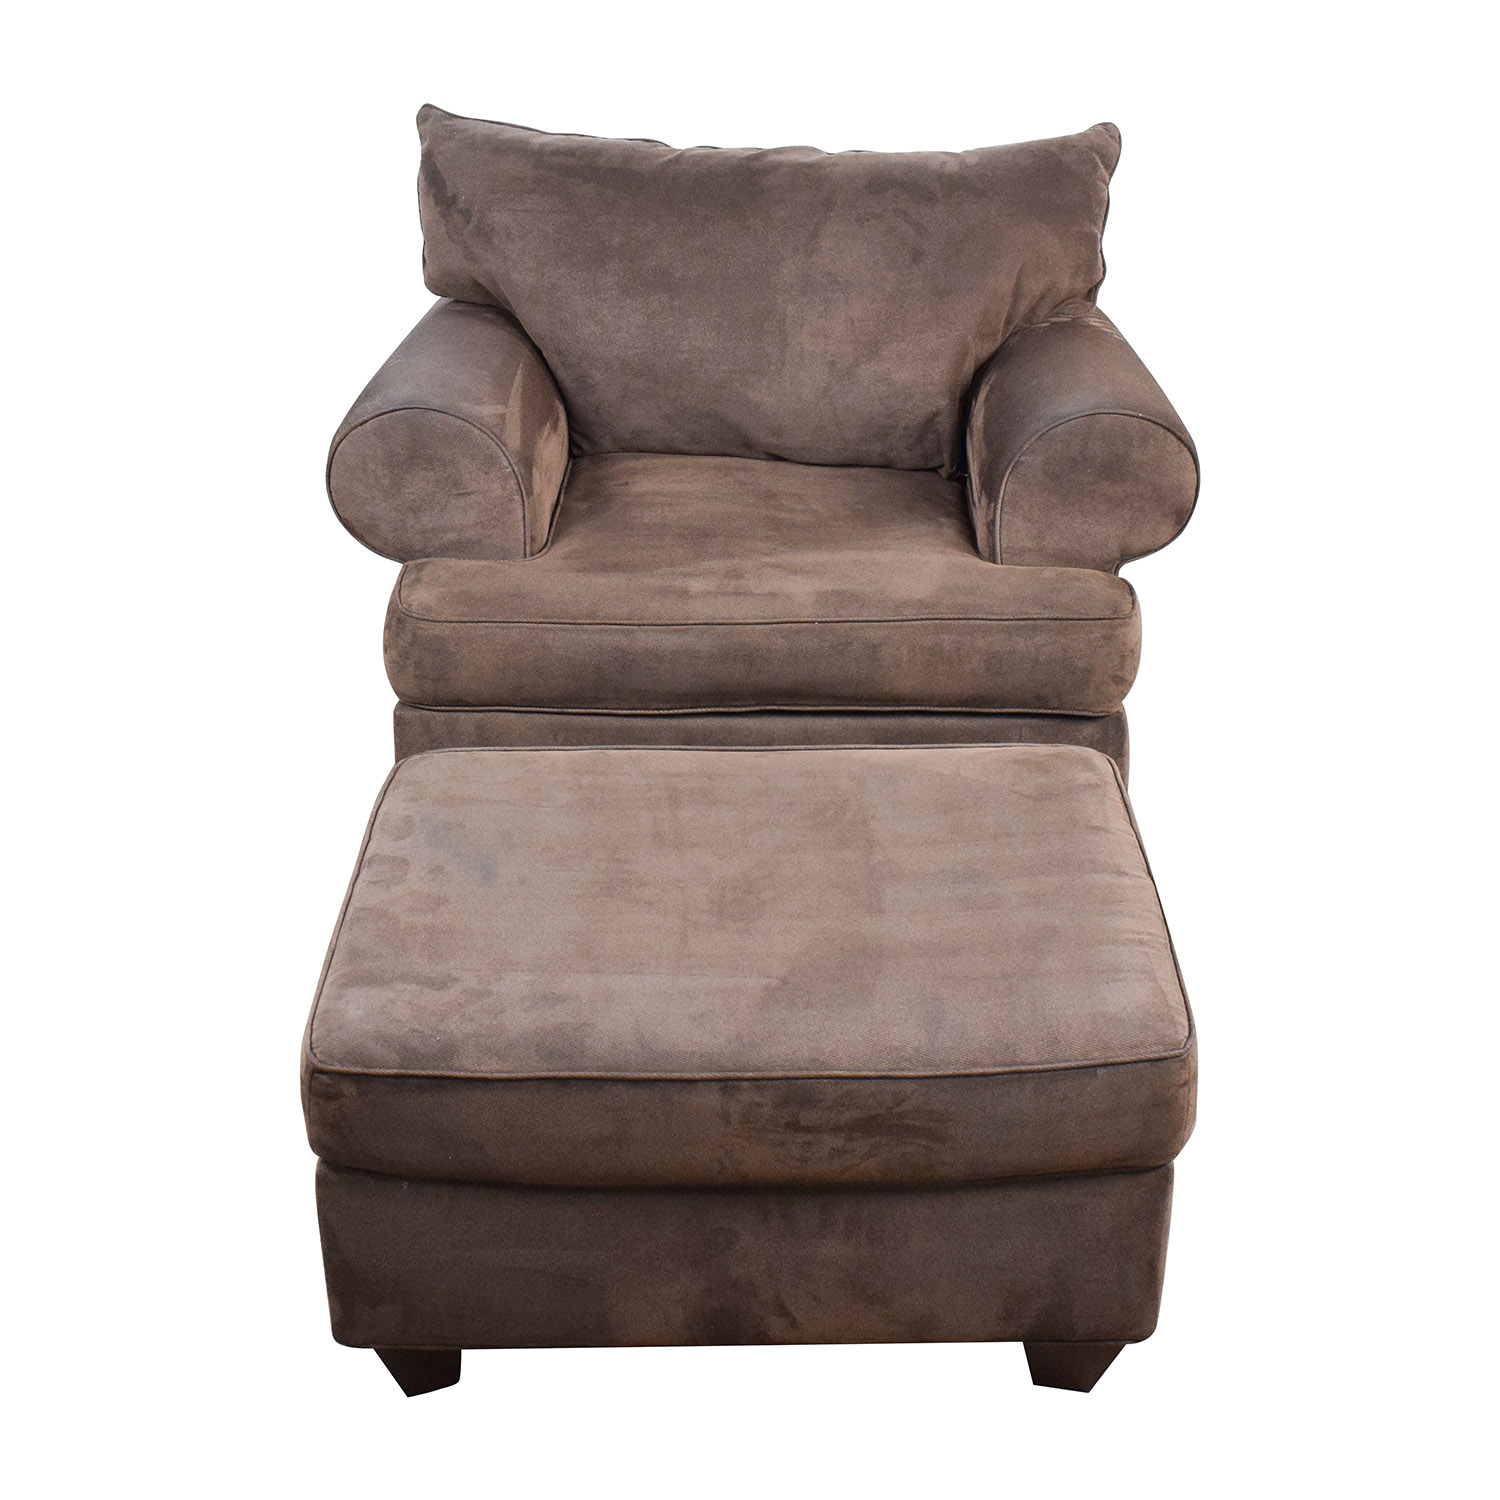 71% OFF Restoration Hardware Restoration Hardware Grey Chair and